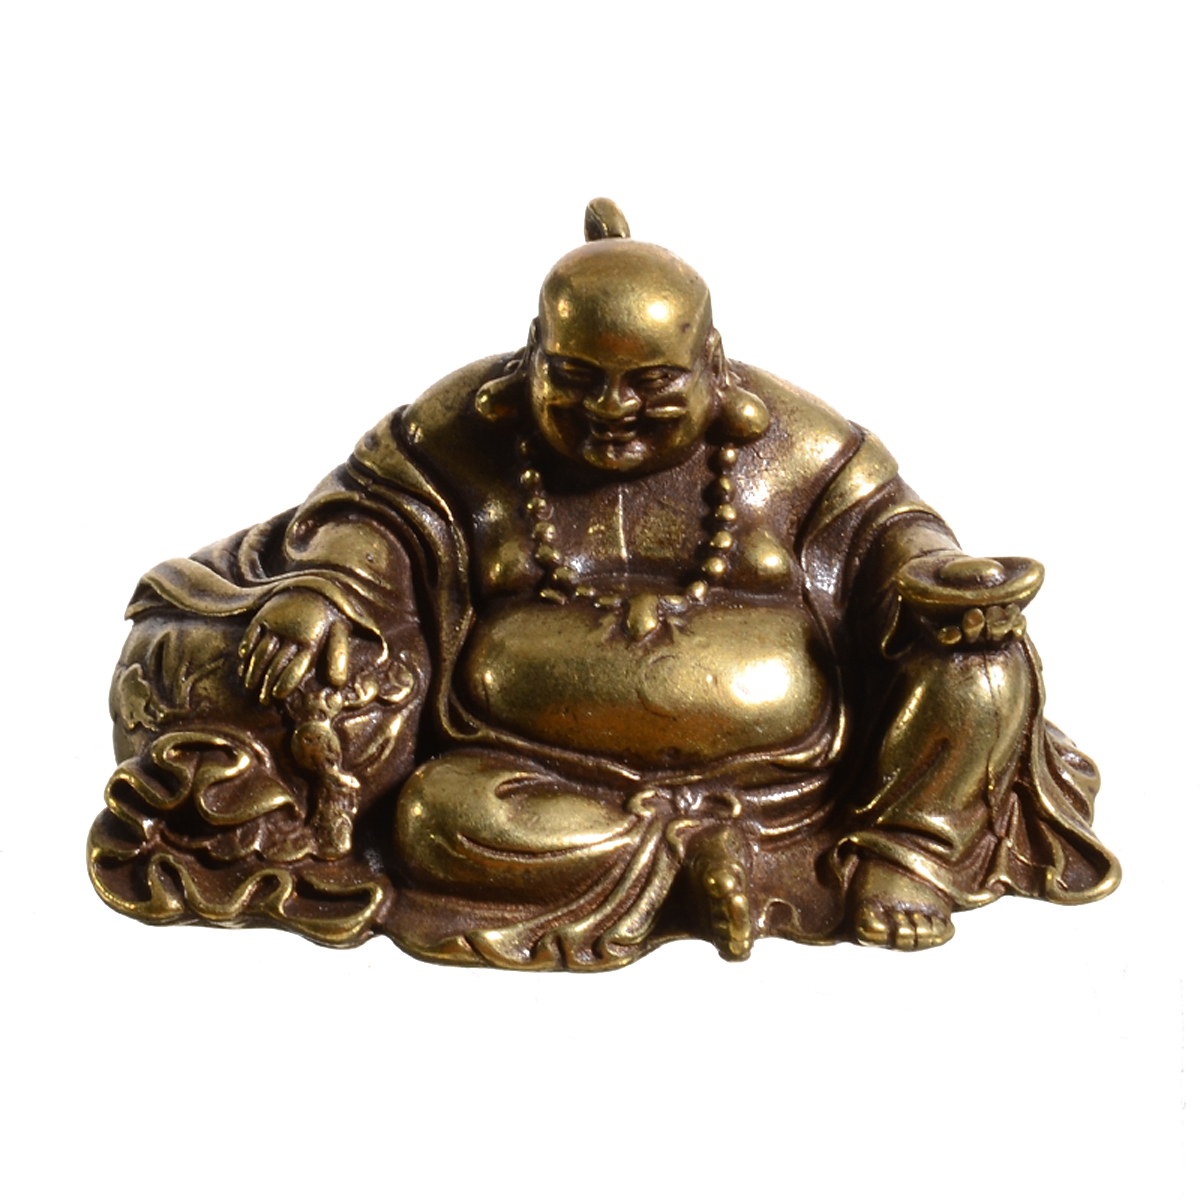 1PC Brass Maitreya Statue Chinese Pure Brass Small Maitreya Buddha Statue Ornaments Home Garden Decoration Statues Collection